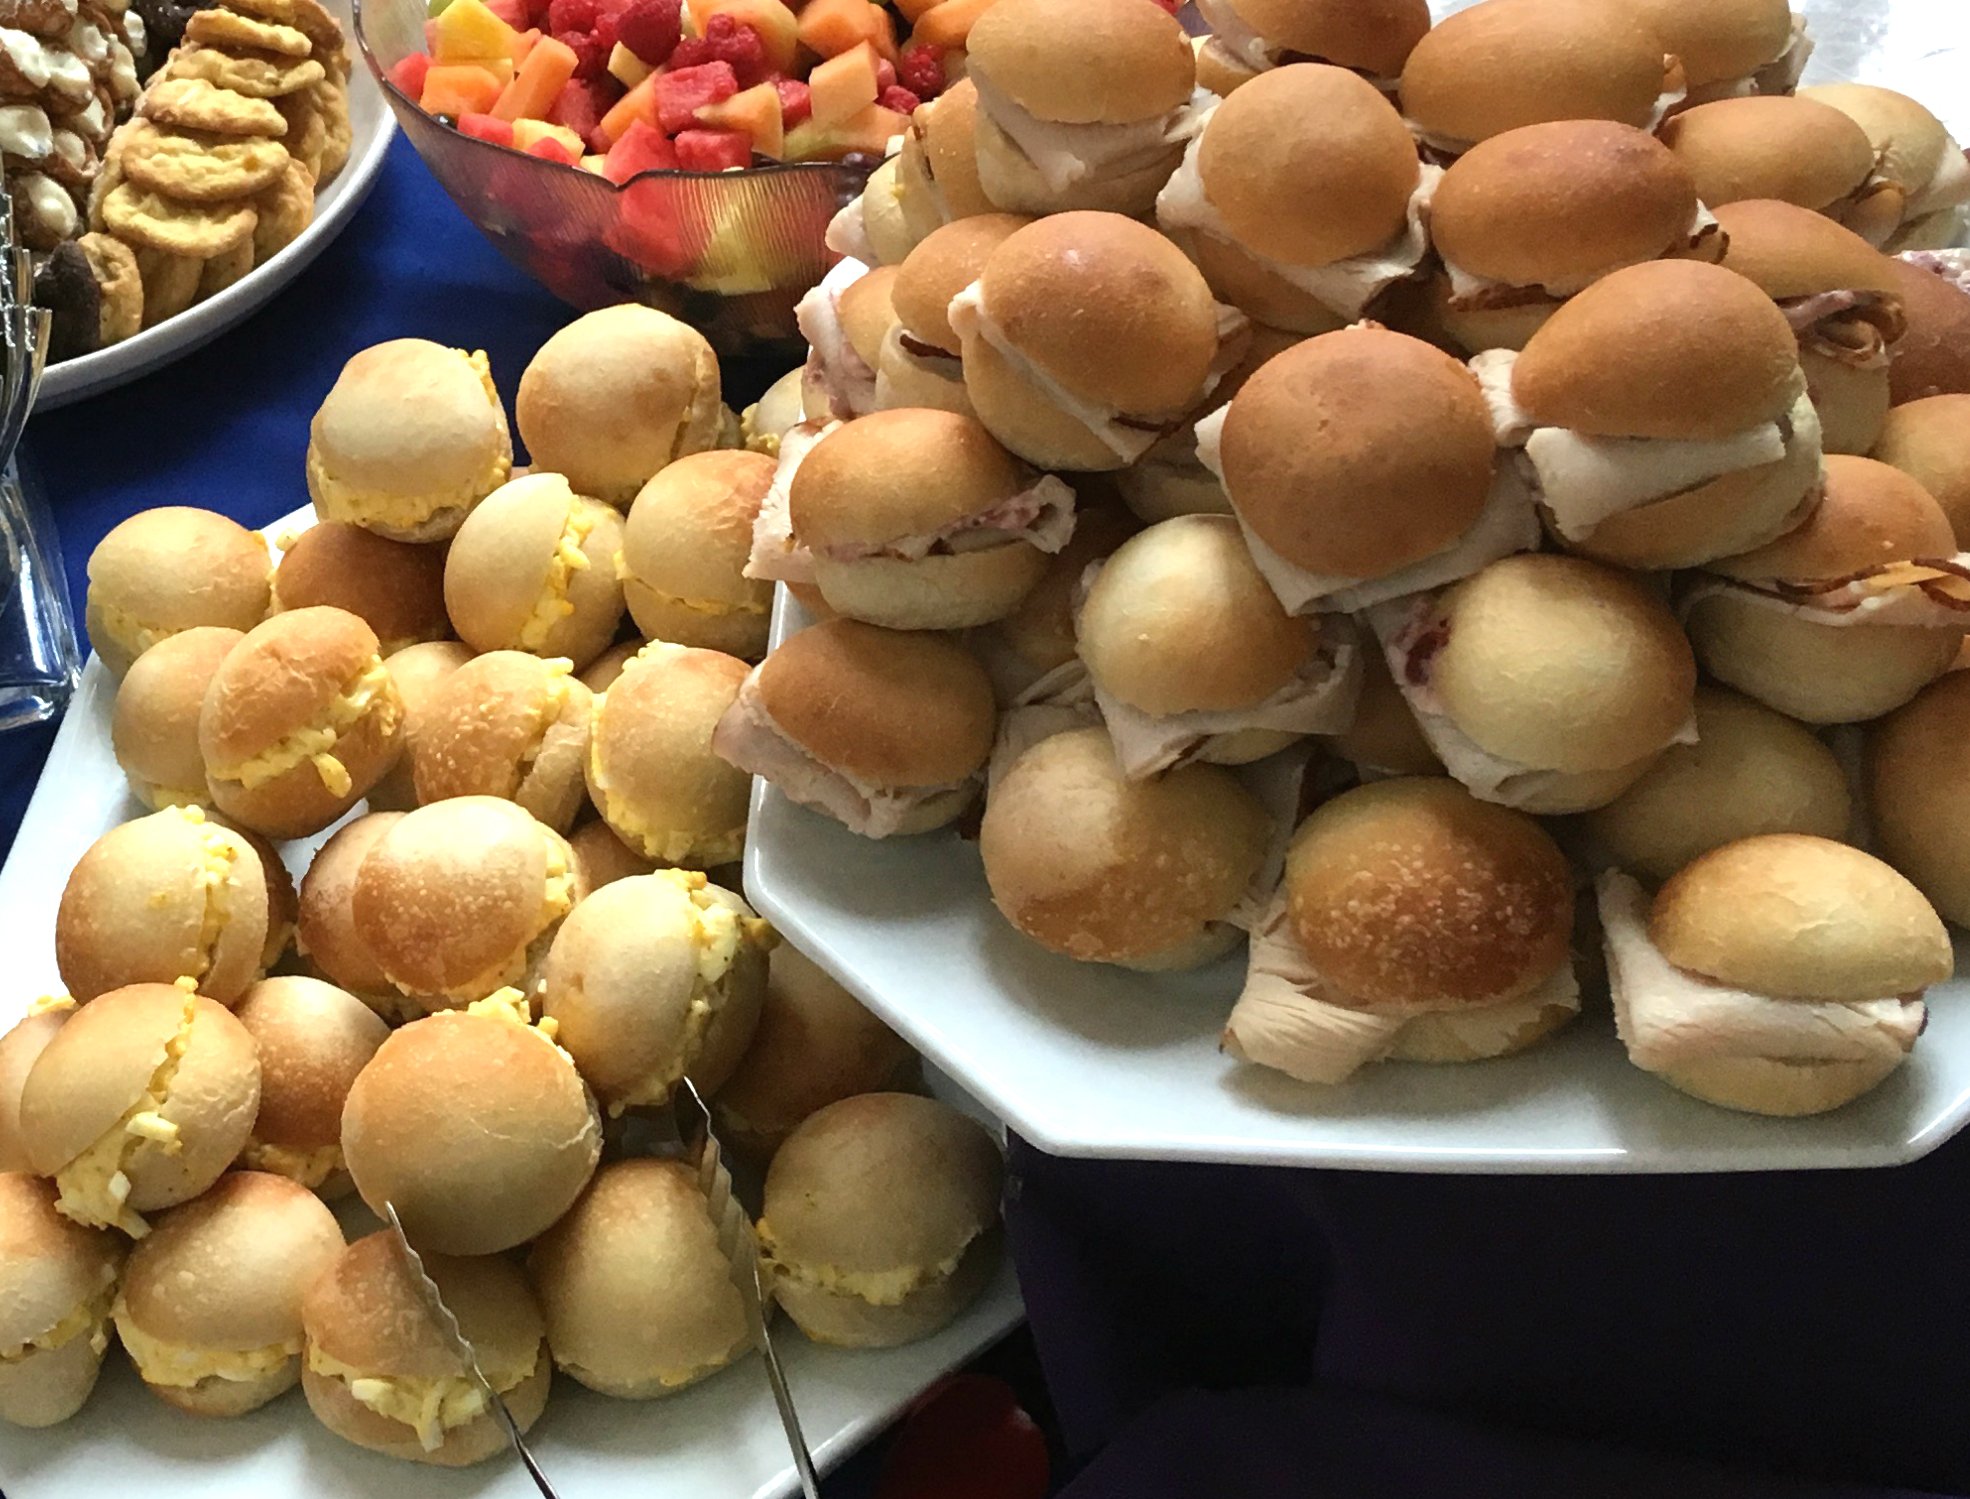 memorial catering, funeral services, funeral catering, memorial service, memorial service catering